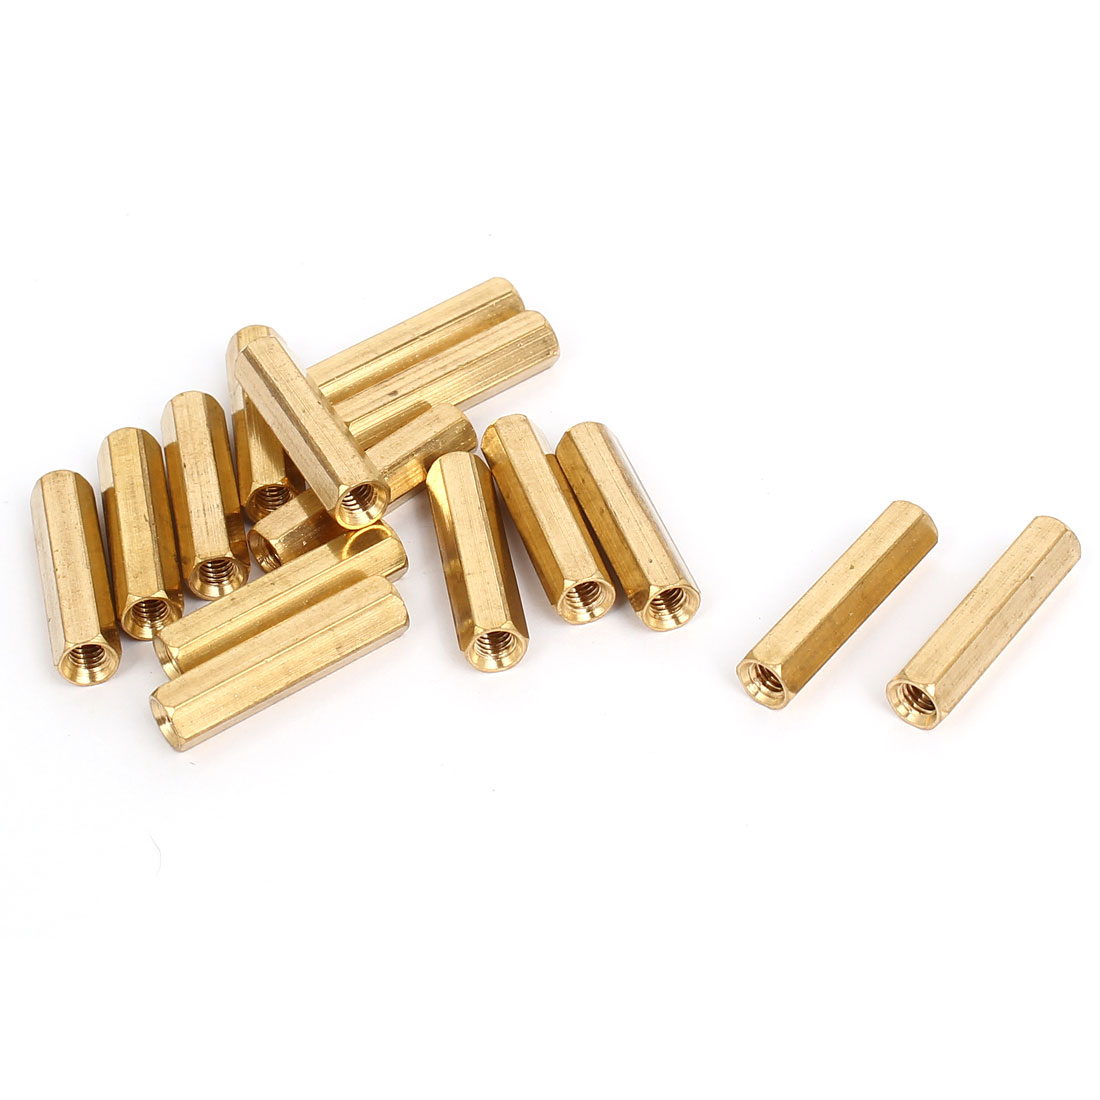 M4x25mm Brass Hex Hexagonal Female Thread PCB Standoff Spacer 15pcs